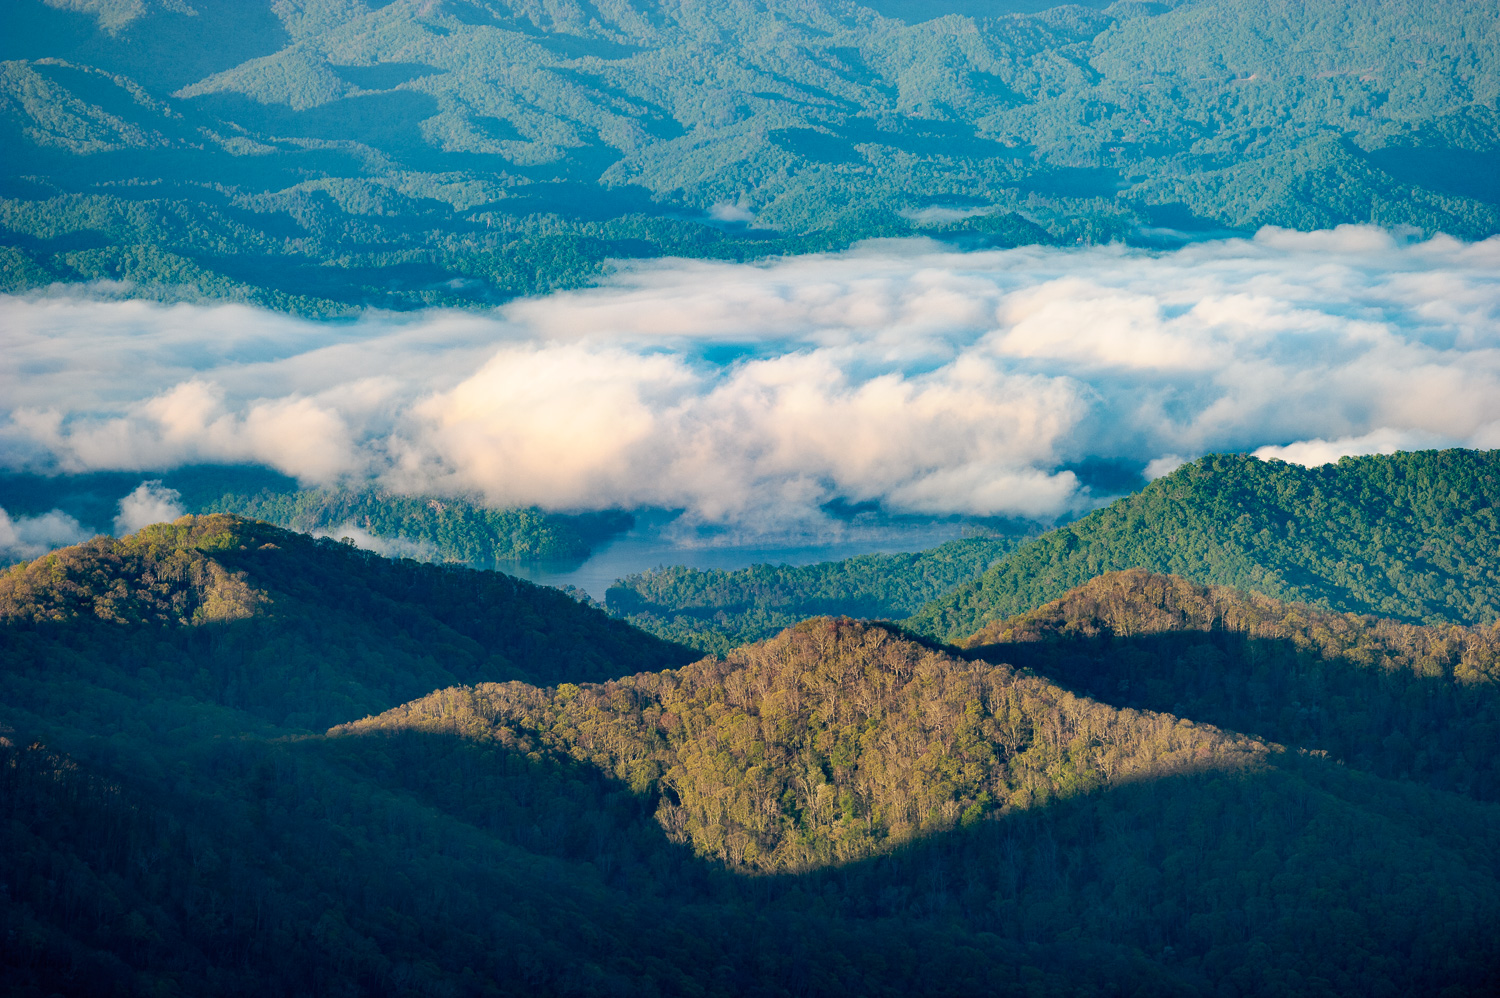 Clouds in the valleys of Great Smoky Mountains National Park. © 2013 Chris Nicholson.